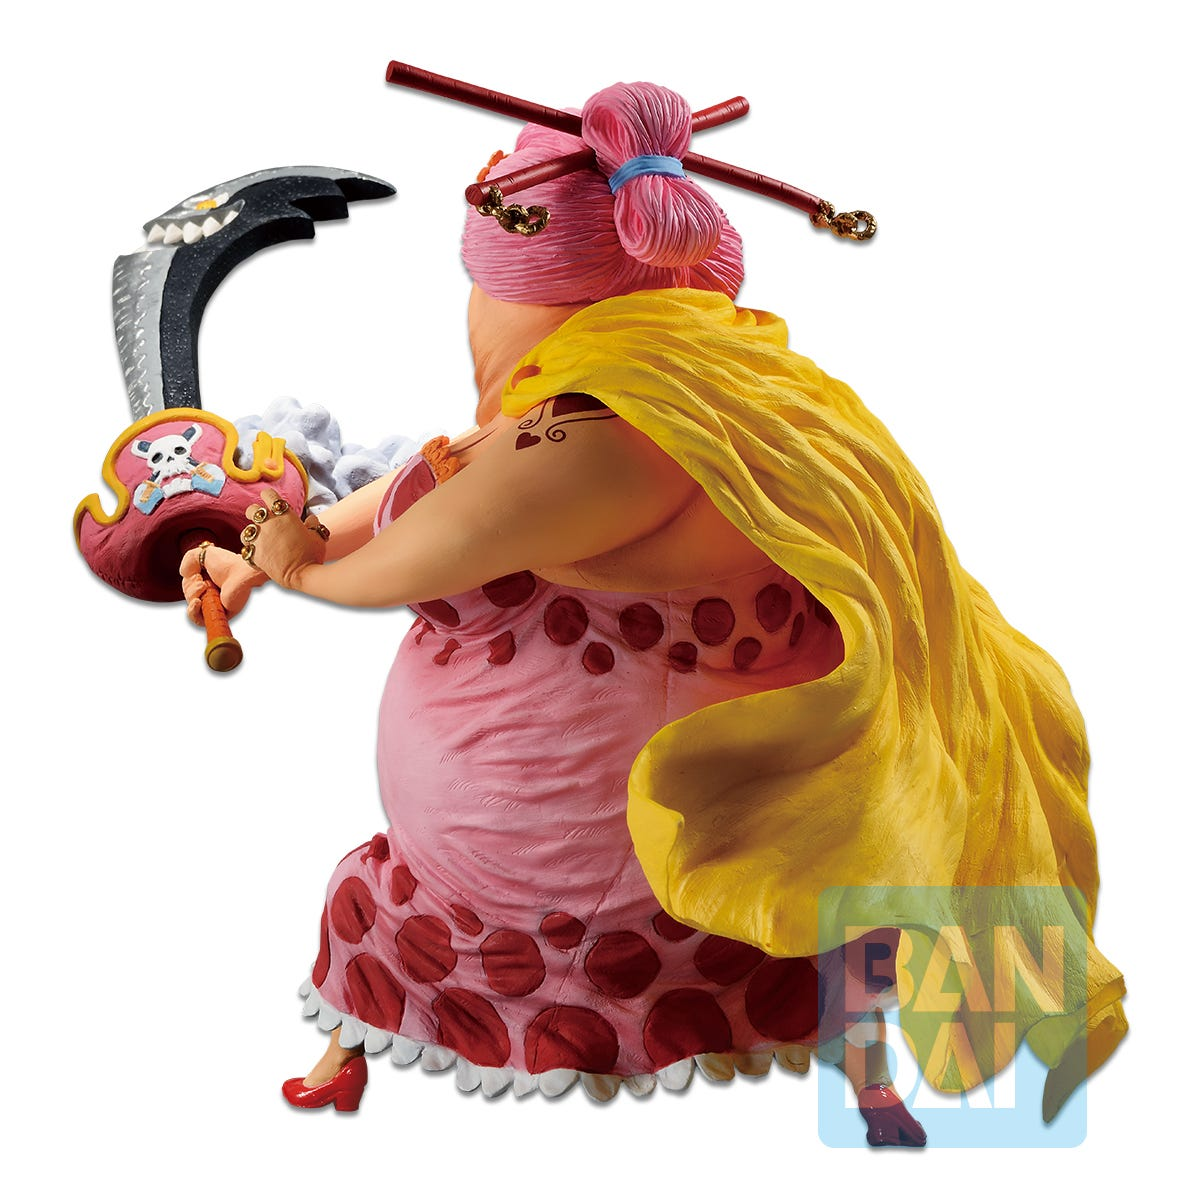 Big Mom (Charlotte LinLin)